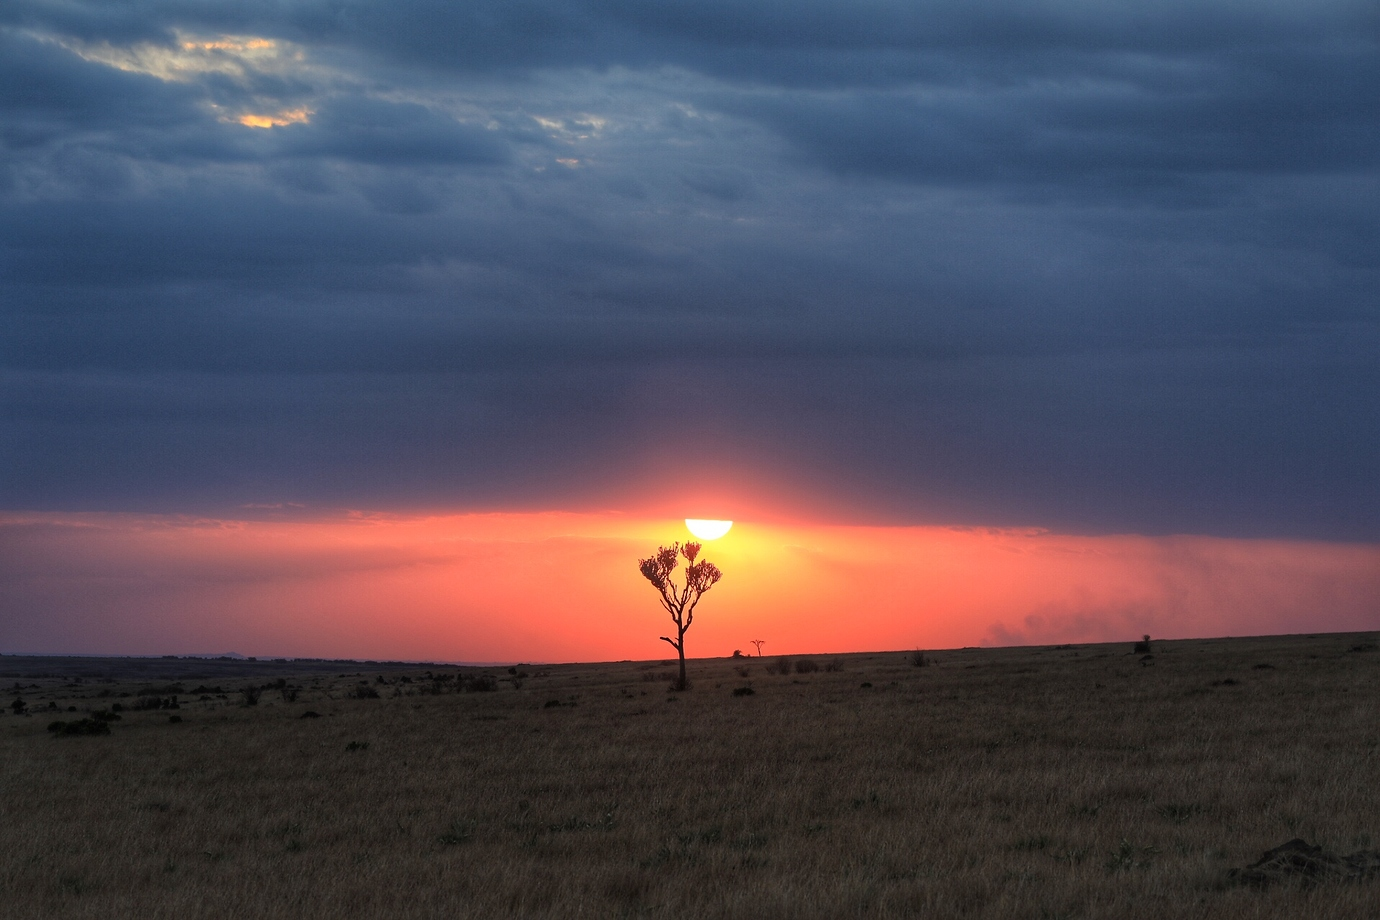 Photo of Sunset in Kenya taken by Catherine